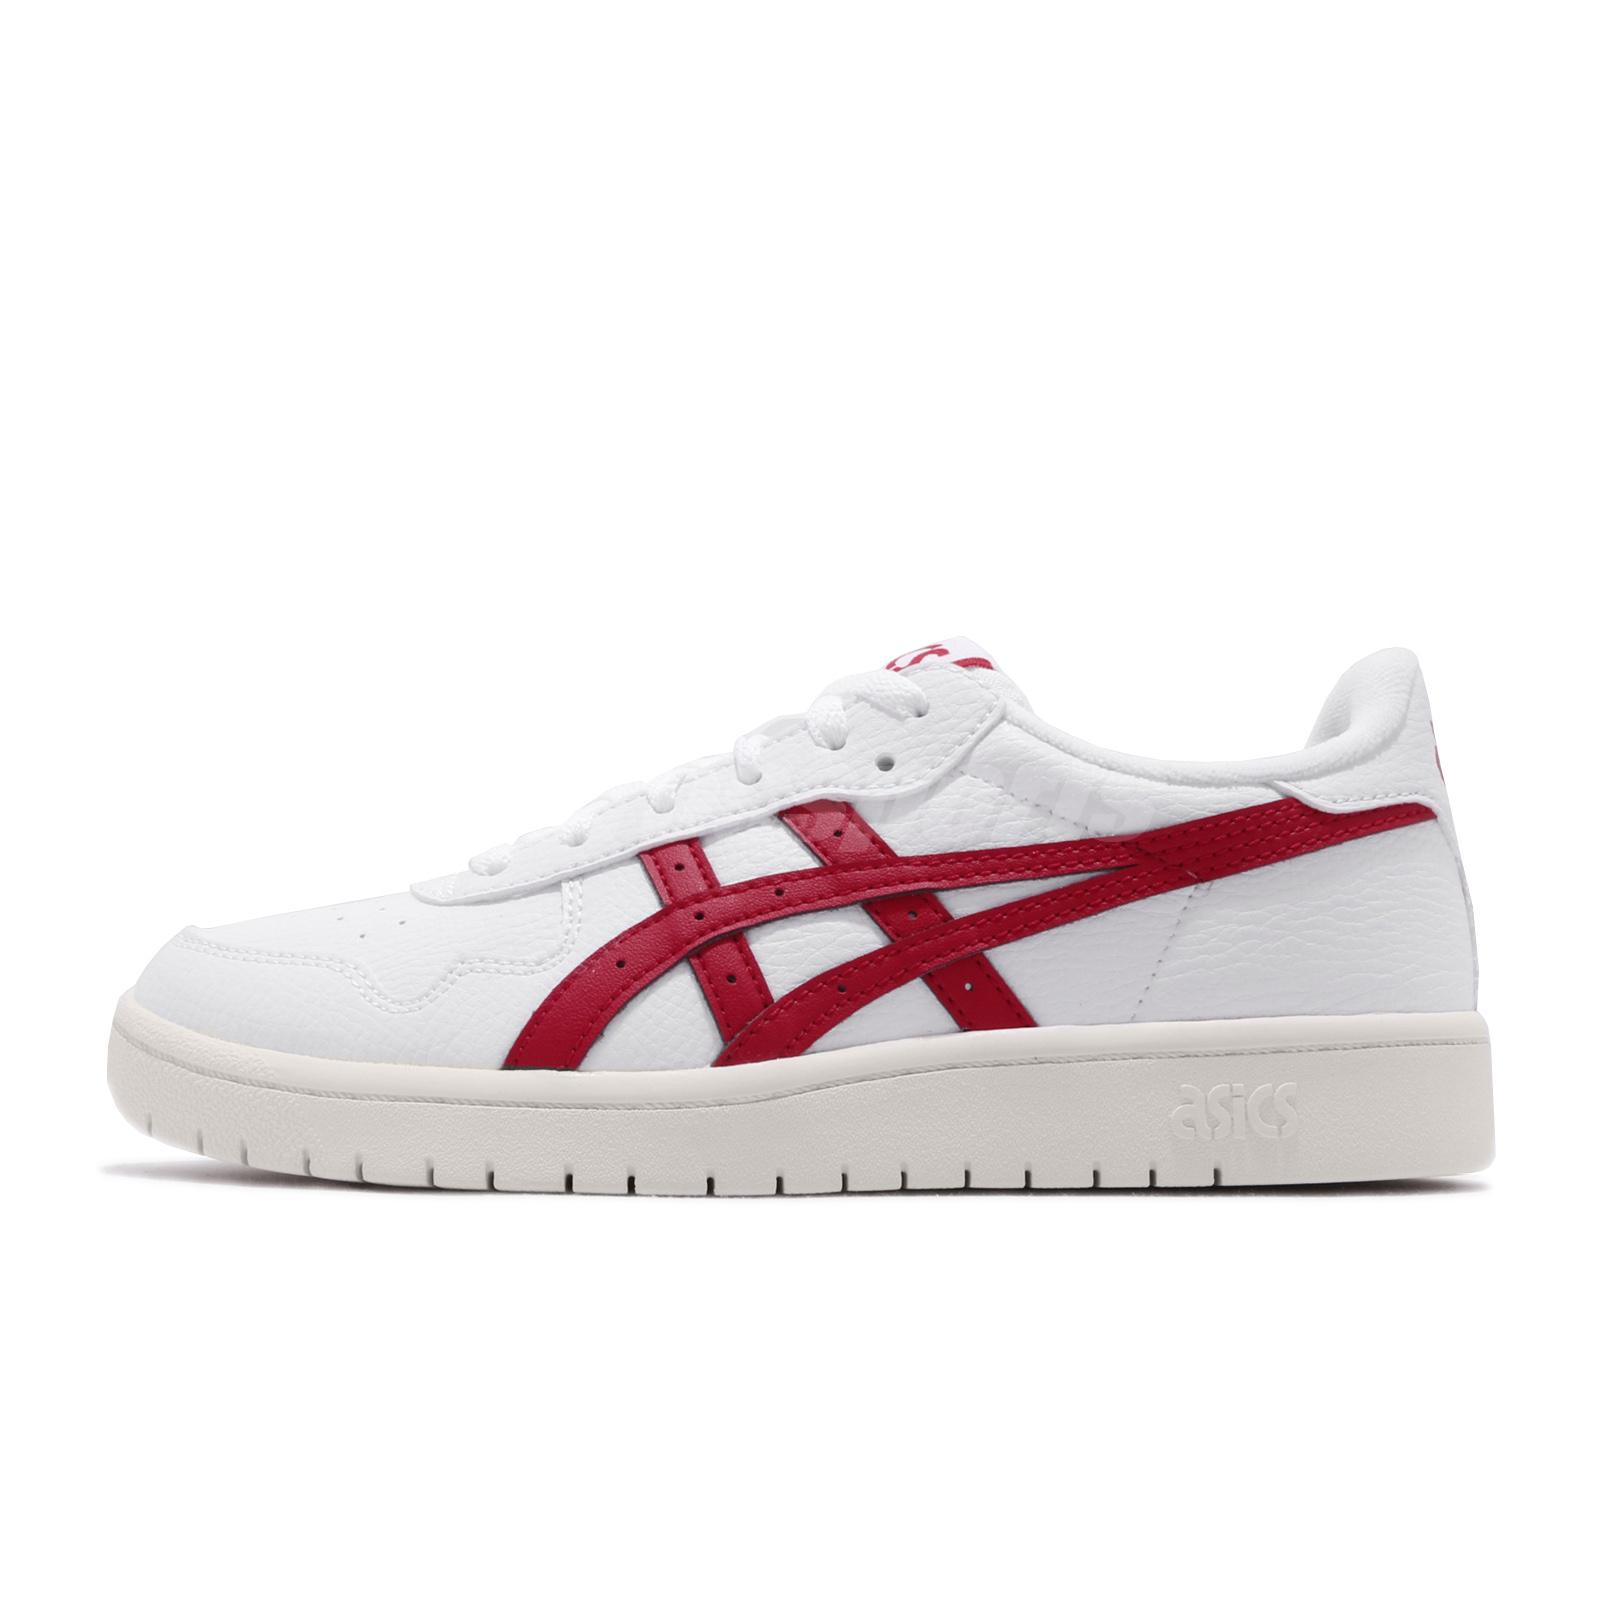 Details about Asics Tiger Japan S White Red Womens Retro Casual Shoes  Sneakers 1192A148-100